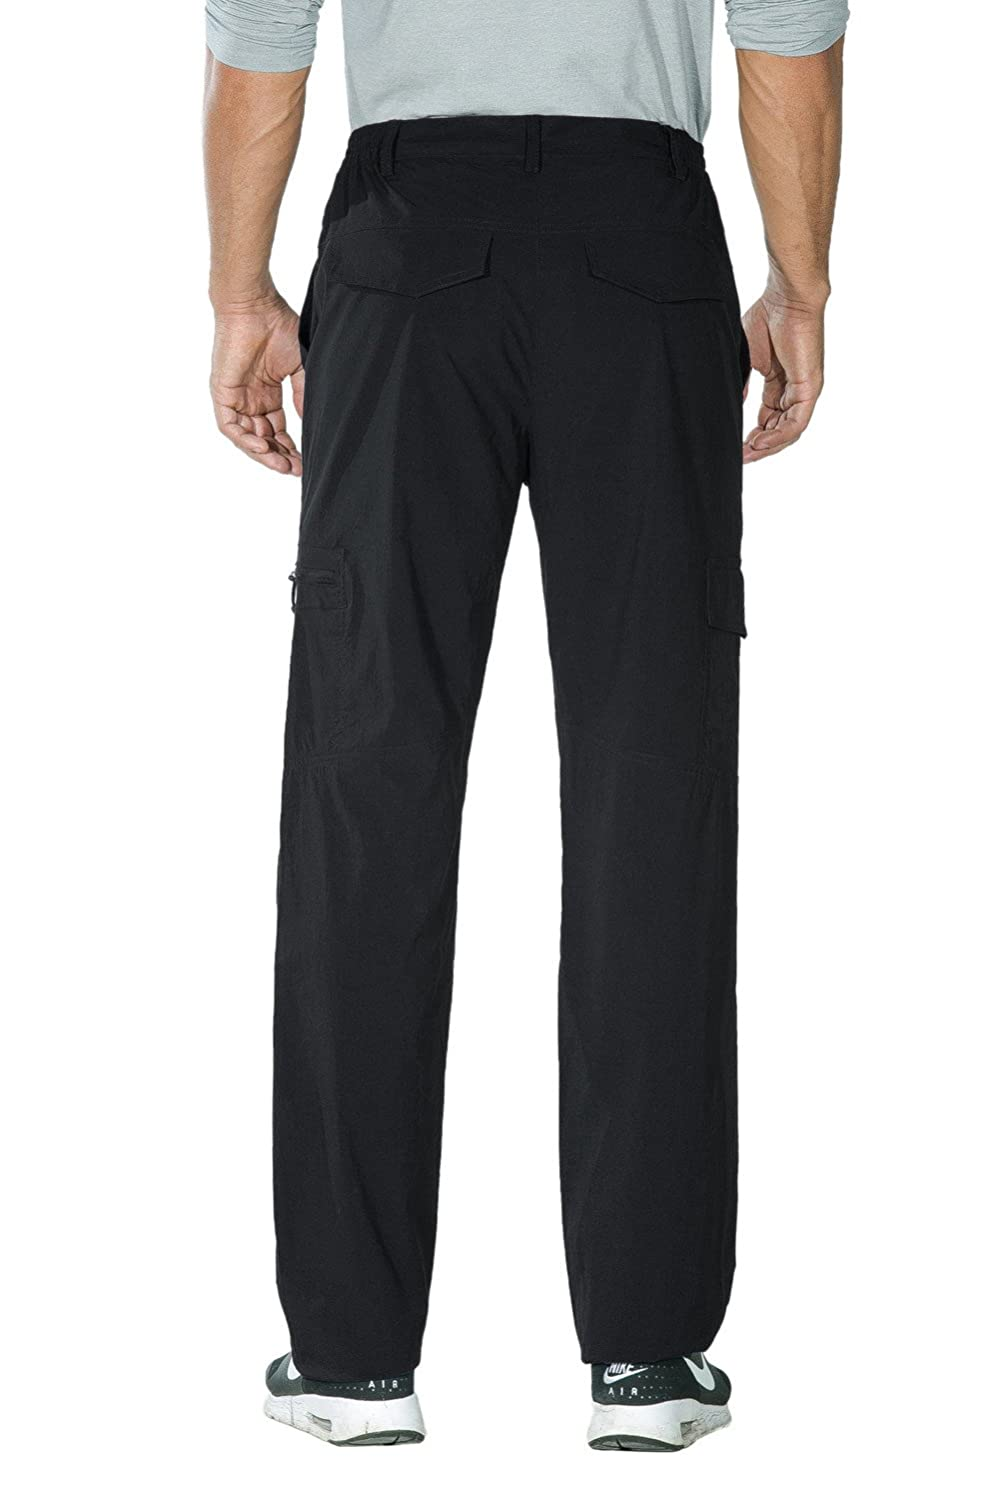 02d042a6819 Amazon.com   Nonwe Men s Outdoor Quick Dry Water-Resistant Breathable Cargo  Pants   Sports   Outdoors